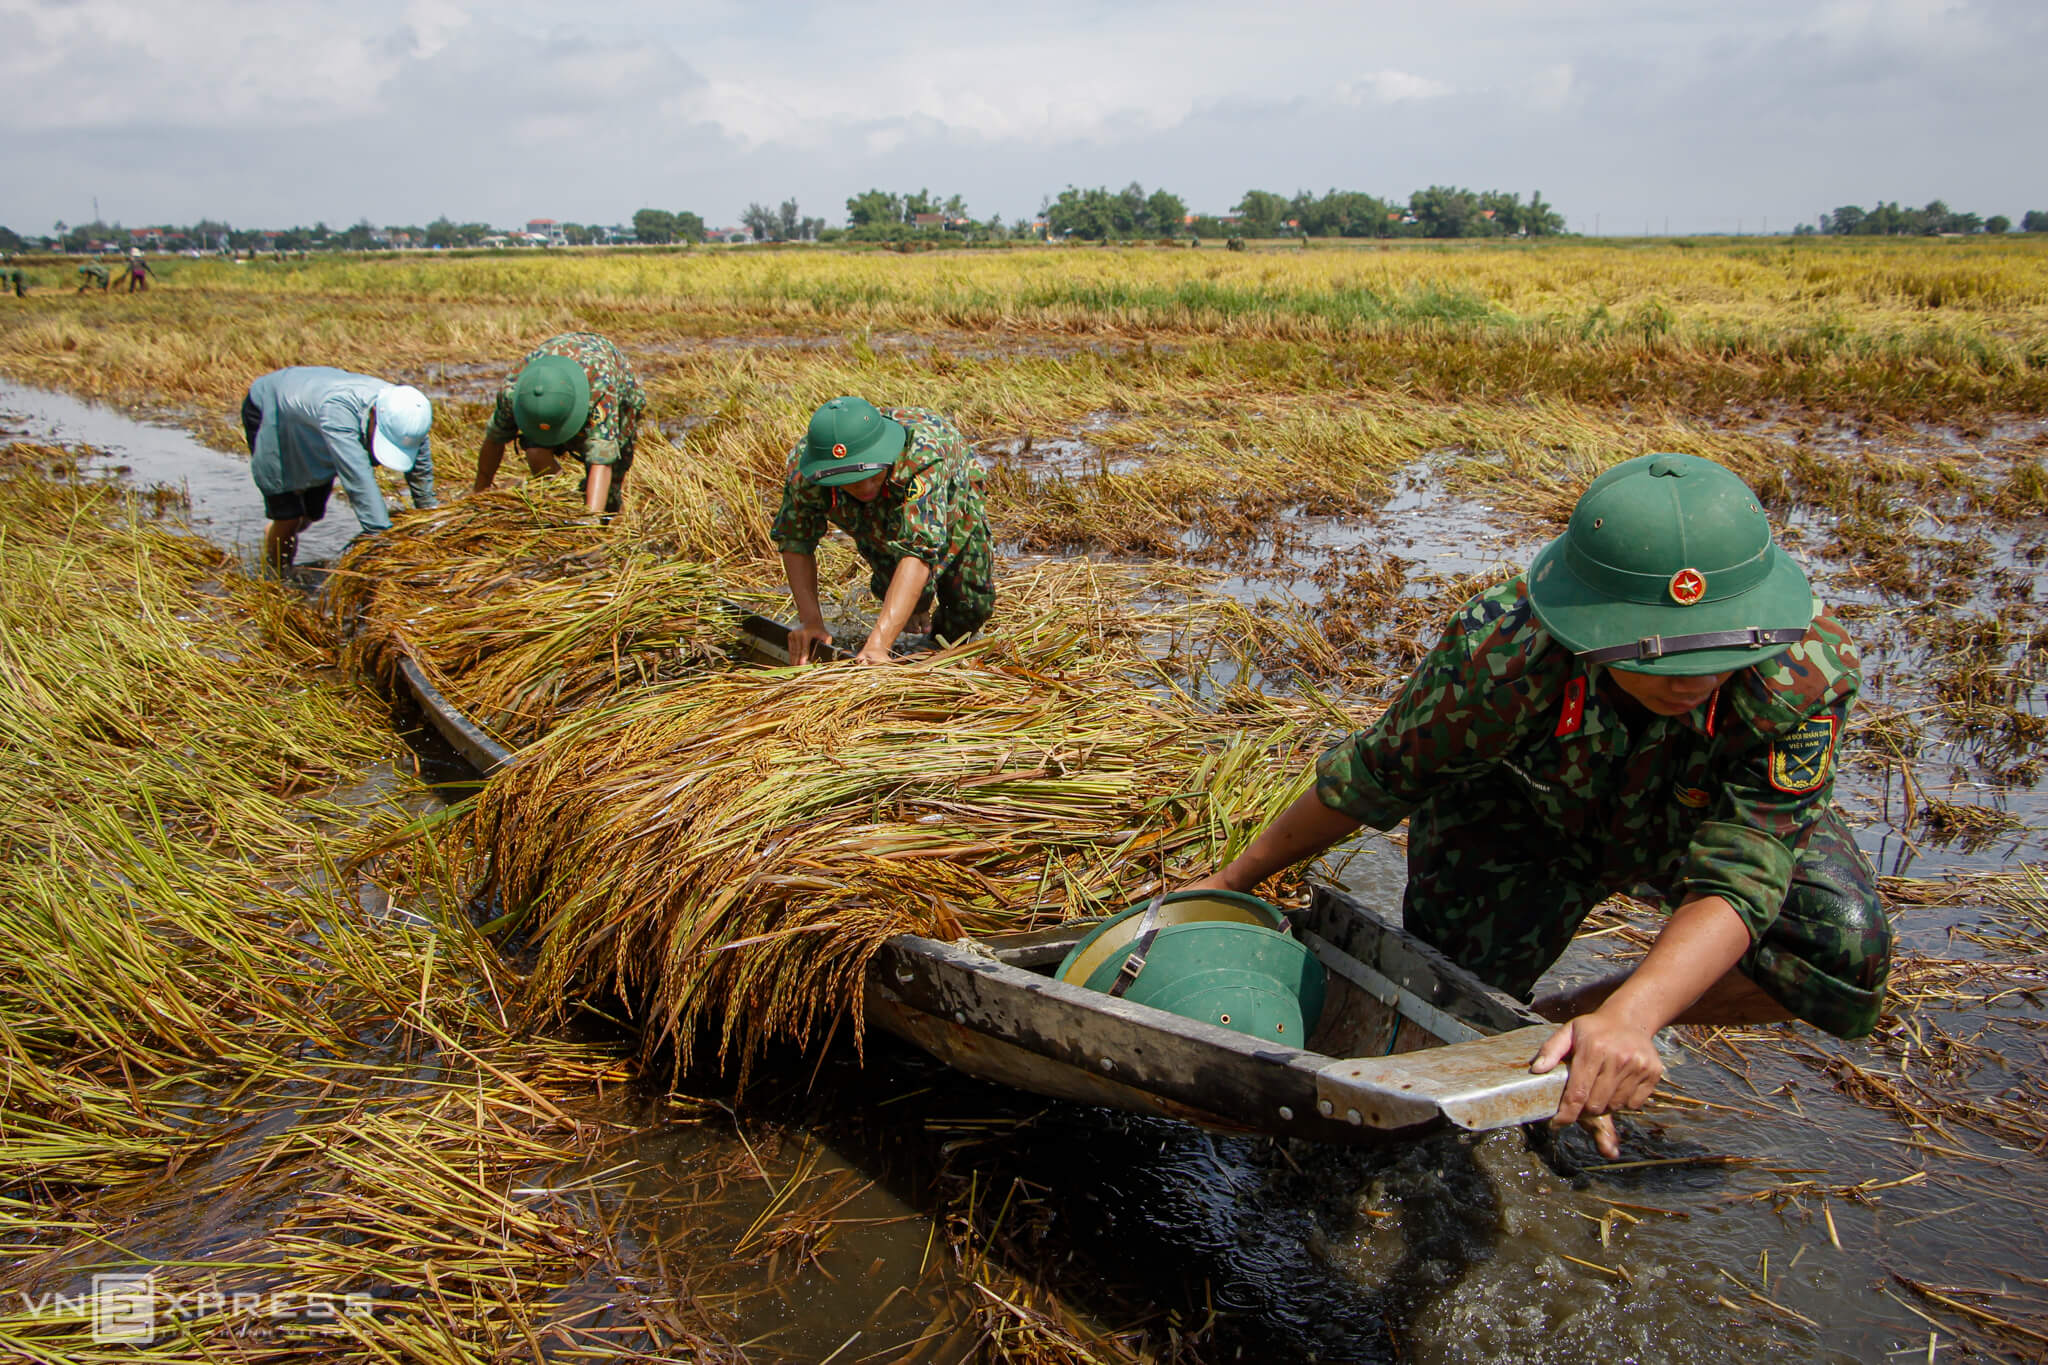 Soldiers help farmers harvest rice in flood-ravaged central Vietnam